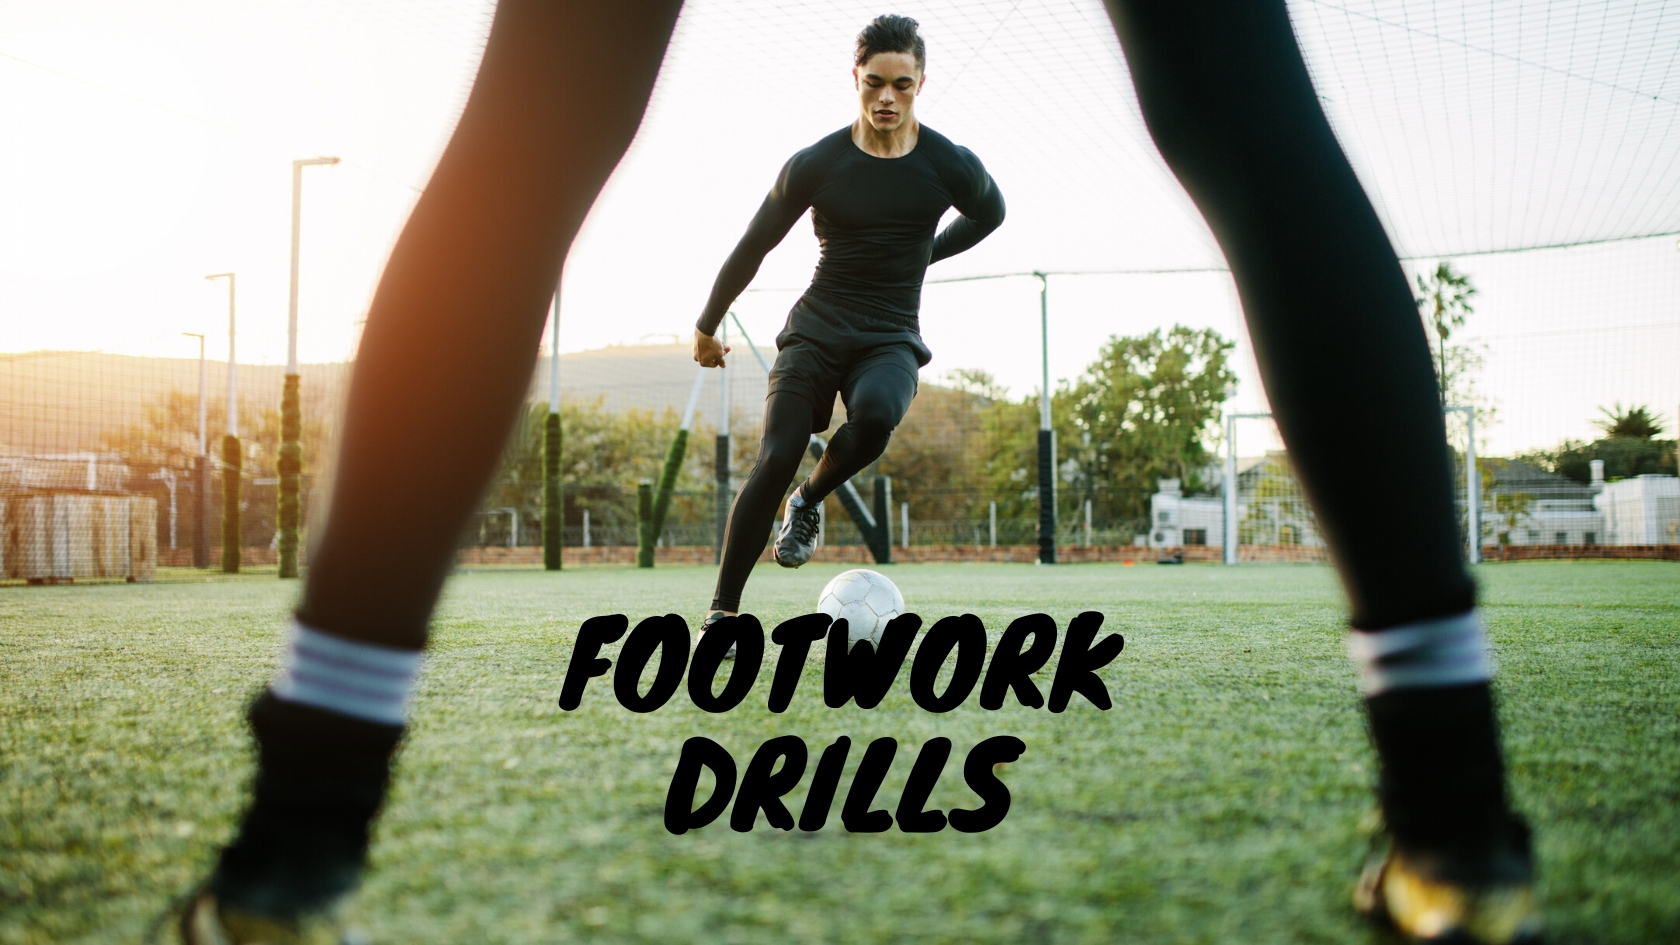 Footwork Drills